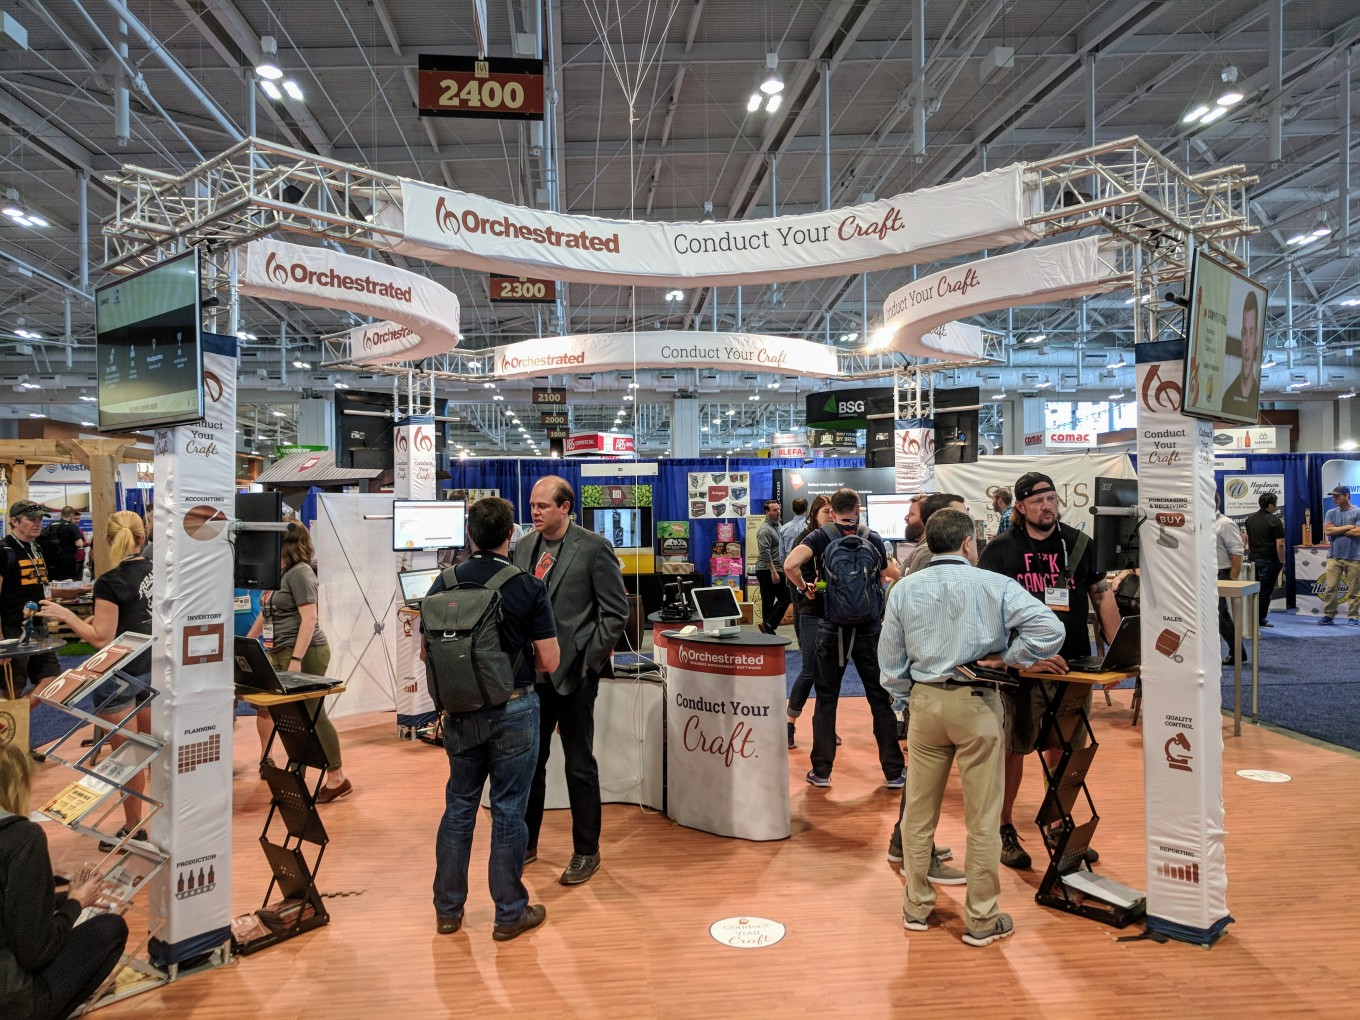 Orchestrated Beer Booth CBC 2018 BrewExpo OBeer